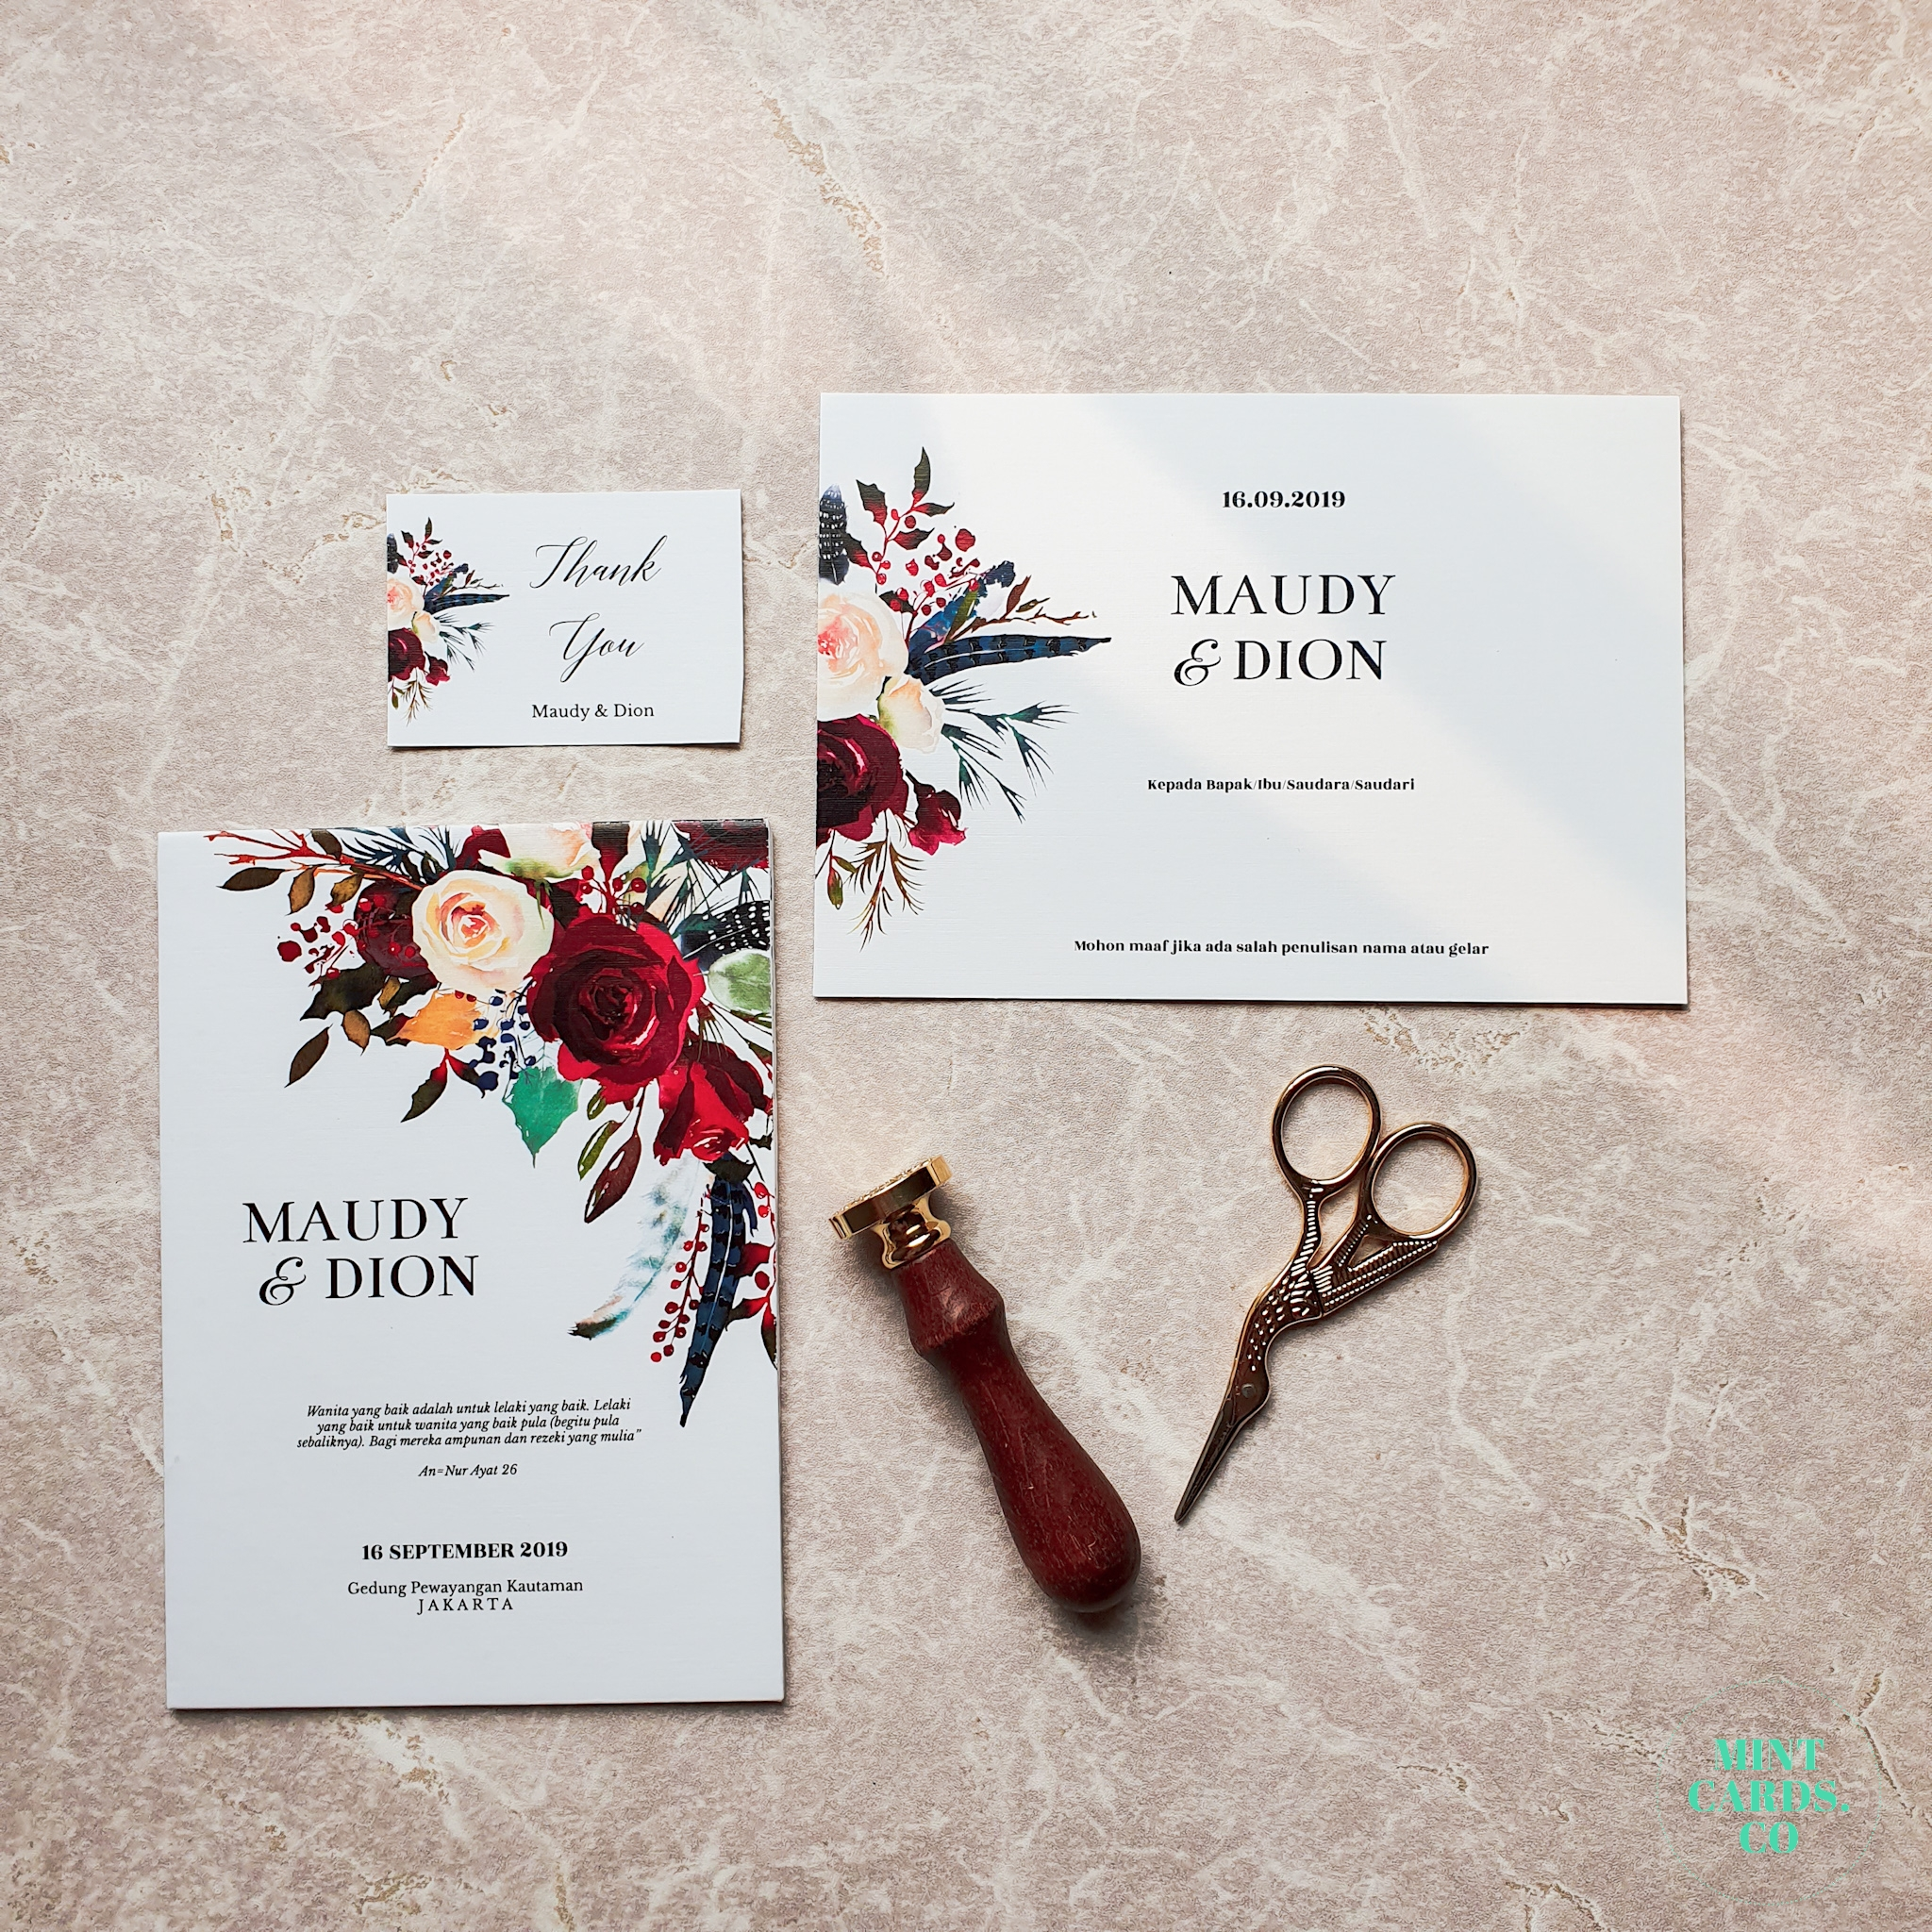 Maudy Dion By Mintcards Co Bridestory Com